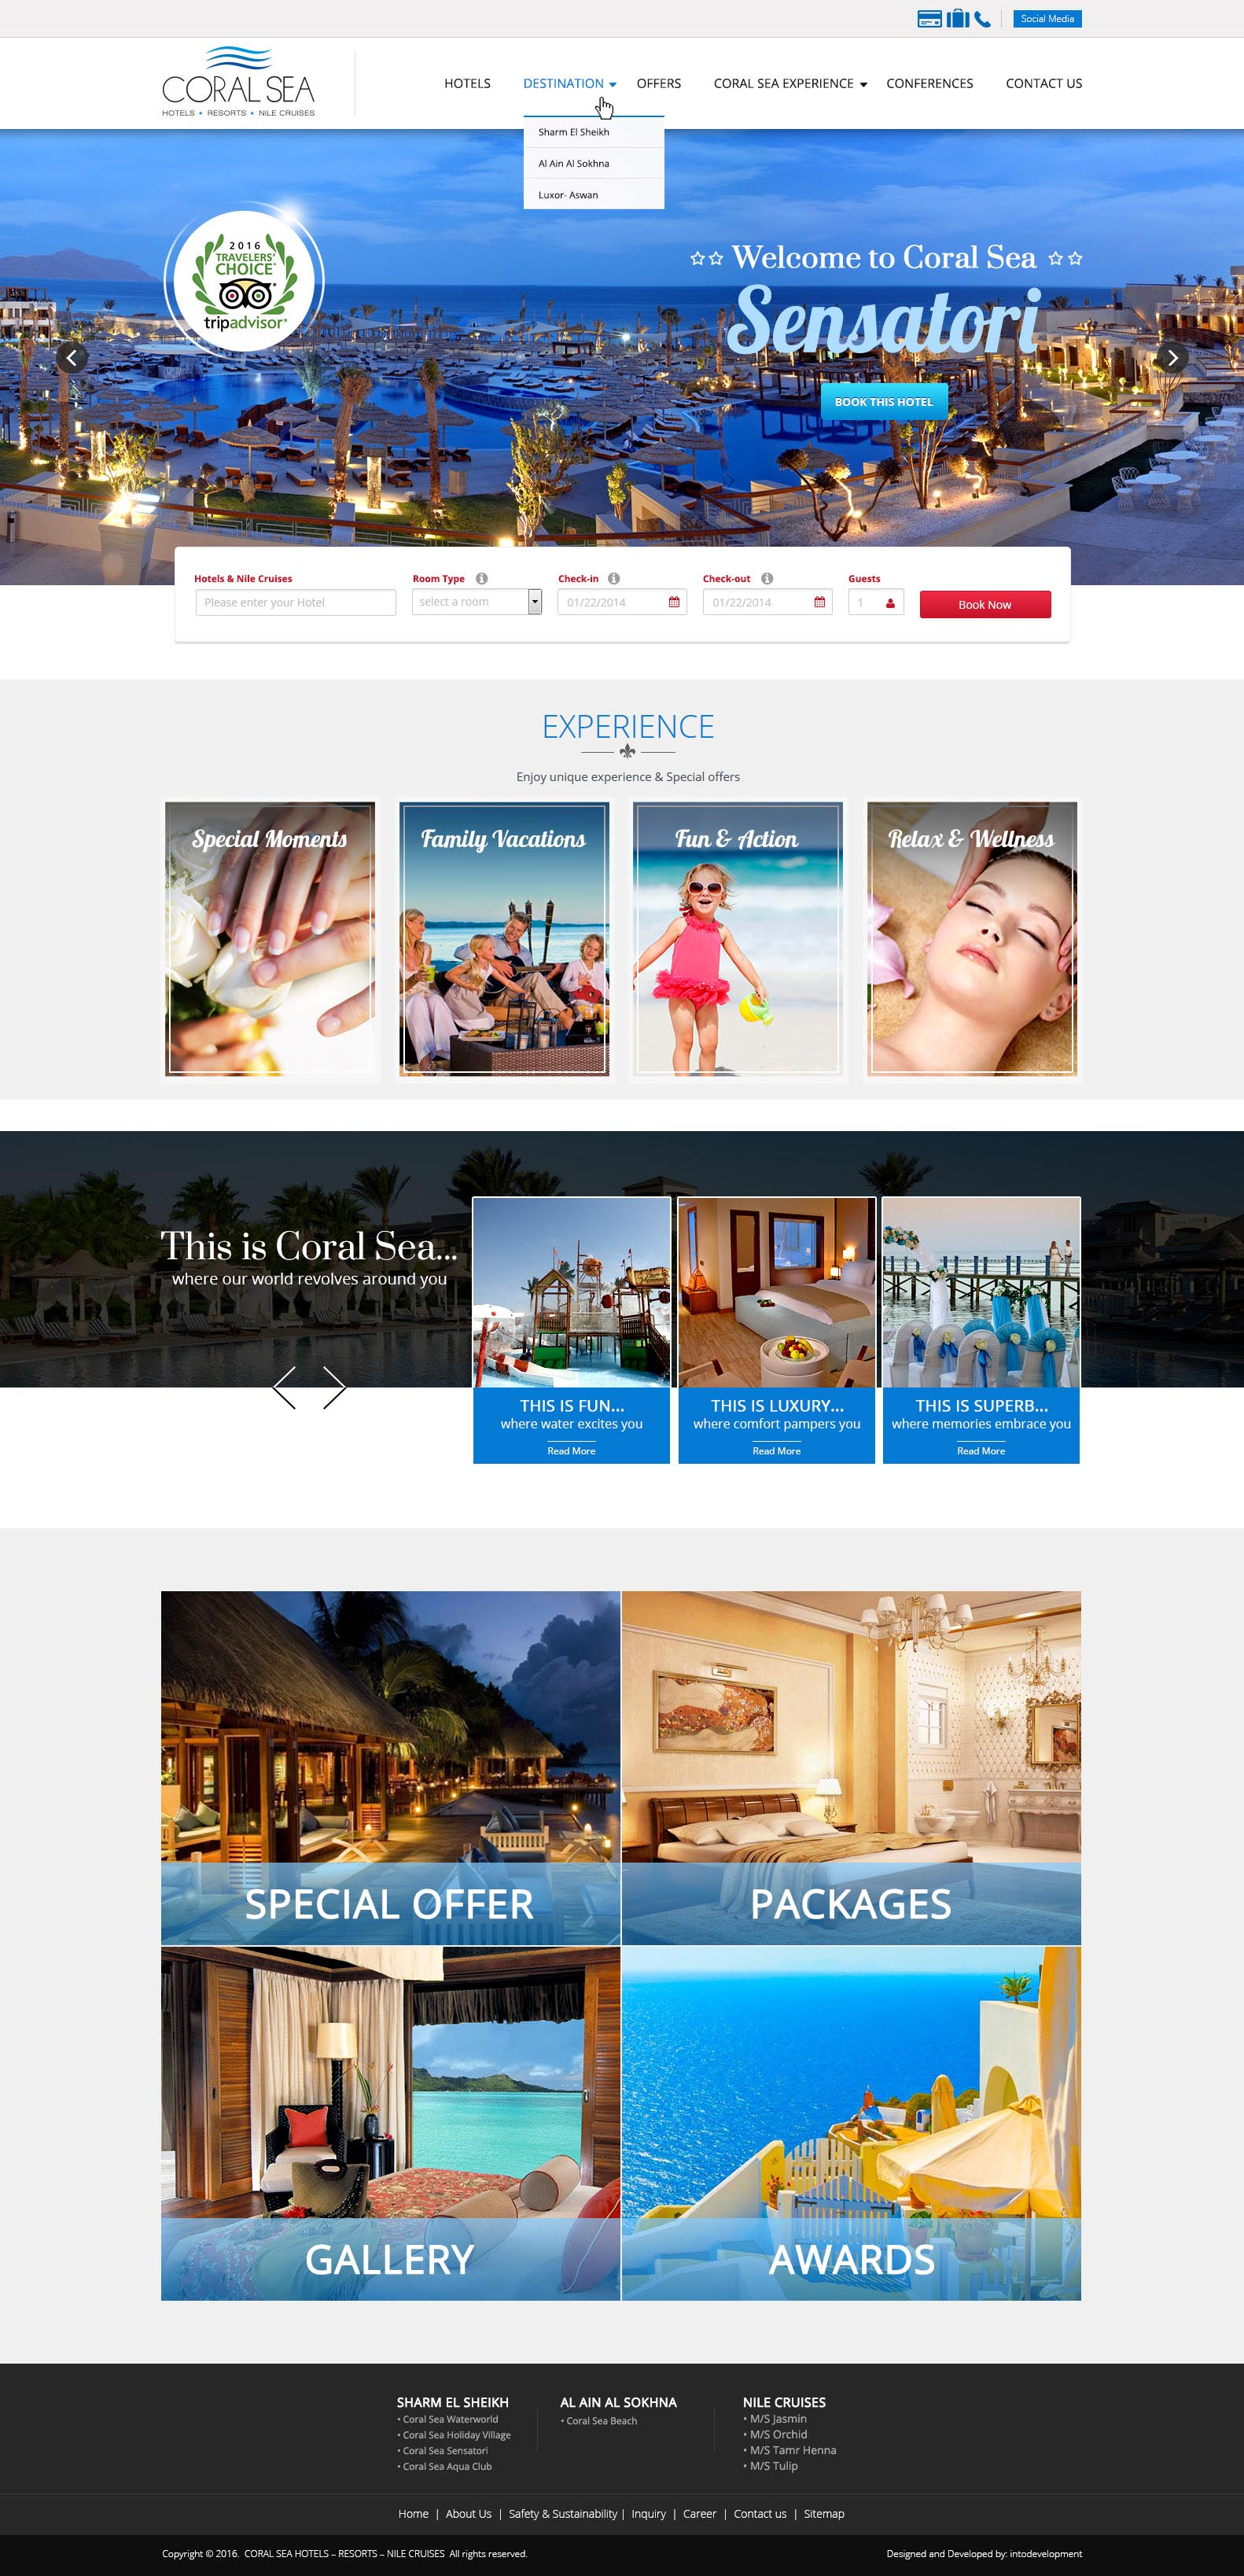 Coral Sea home - web development-egypt-doha